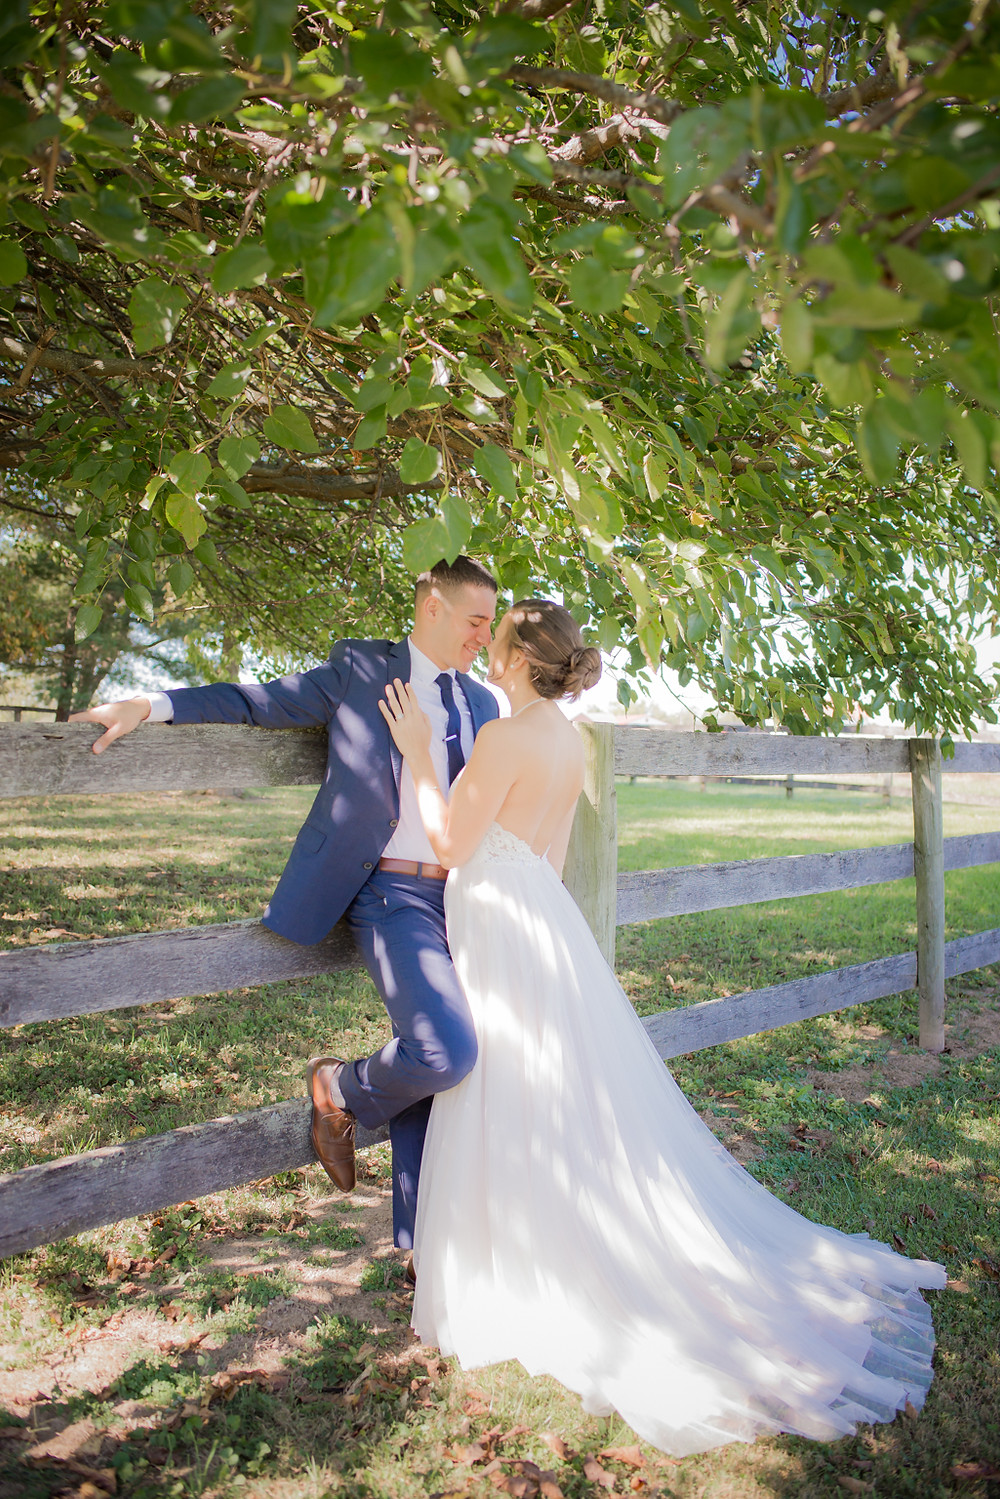 Jacqueline Binkley Photography - The Barns at Maple Valley Farm LLC Peach Orchard